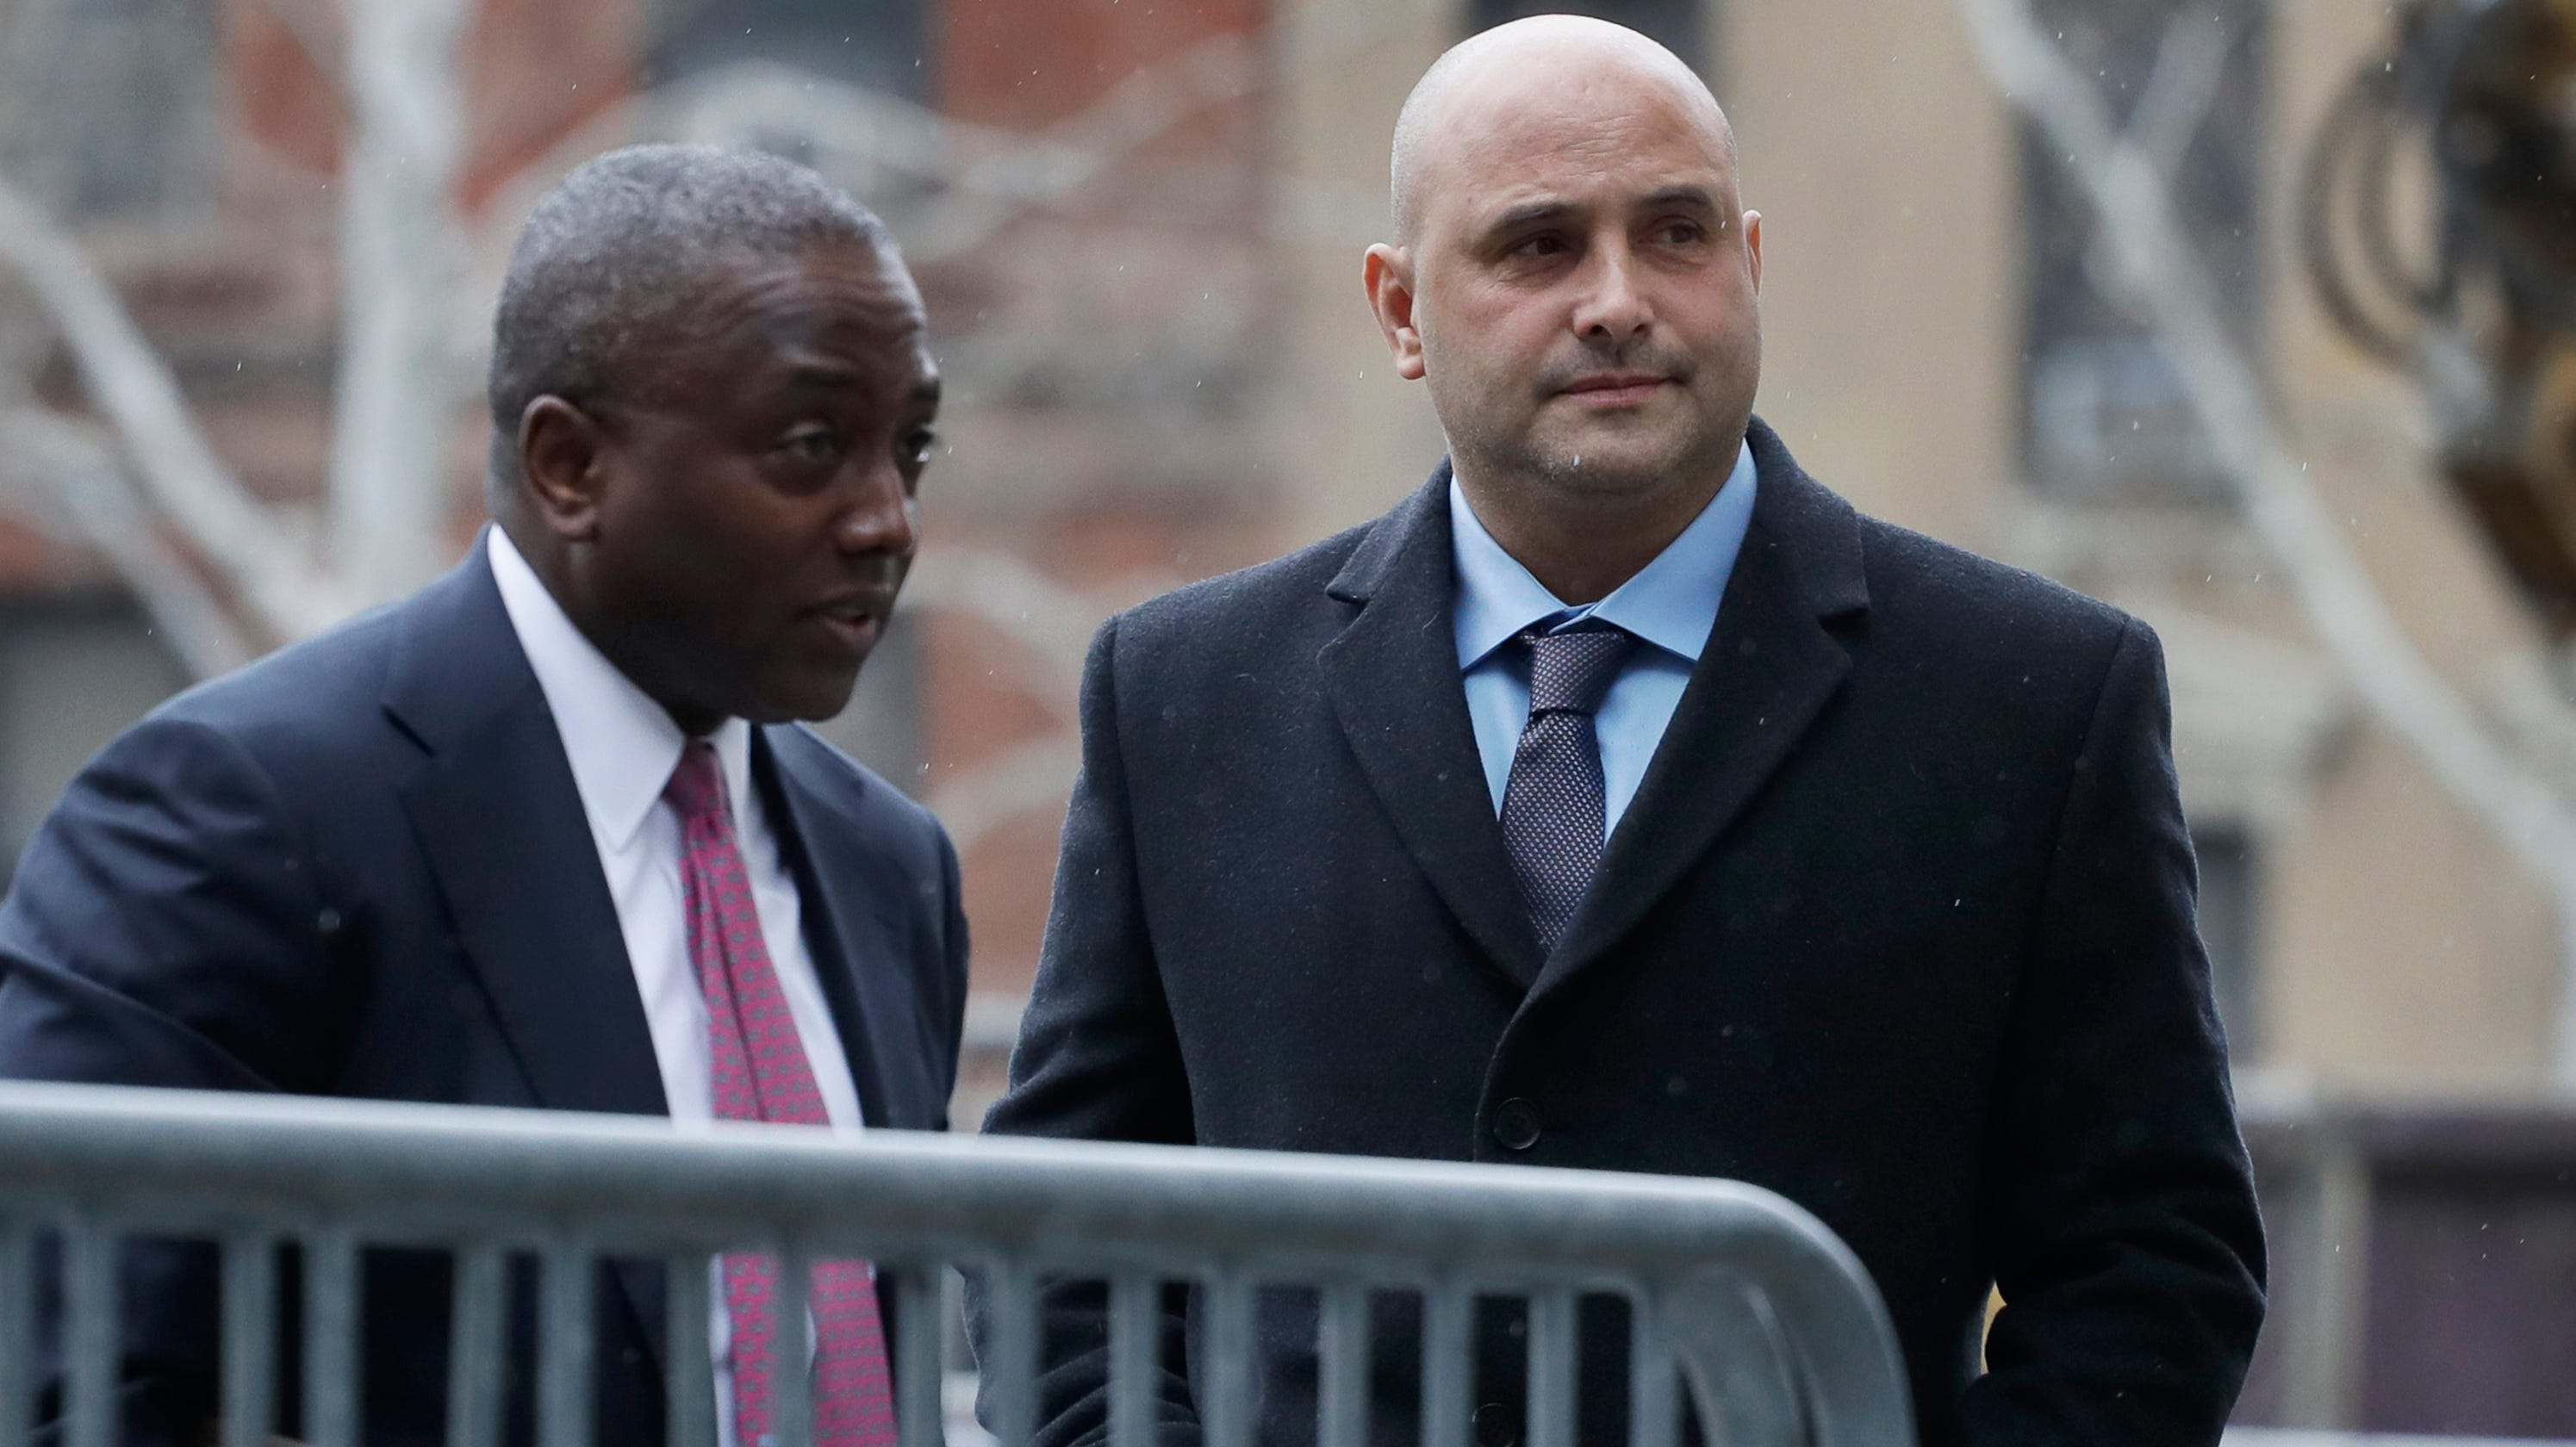 Craig Carton, Boomer Esiason's former radio co-host, released early from prison